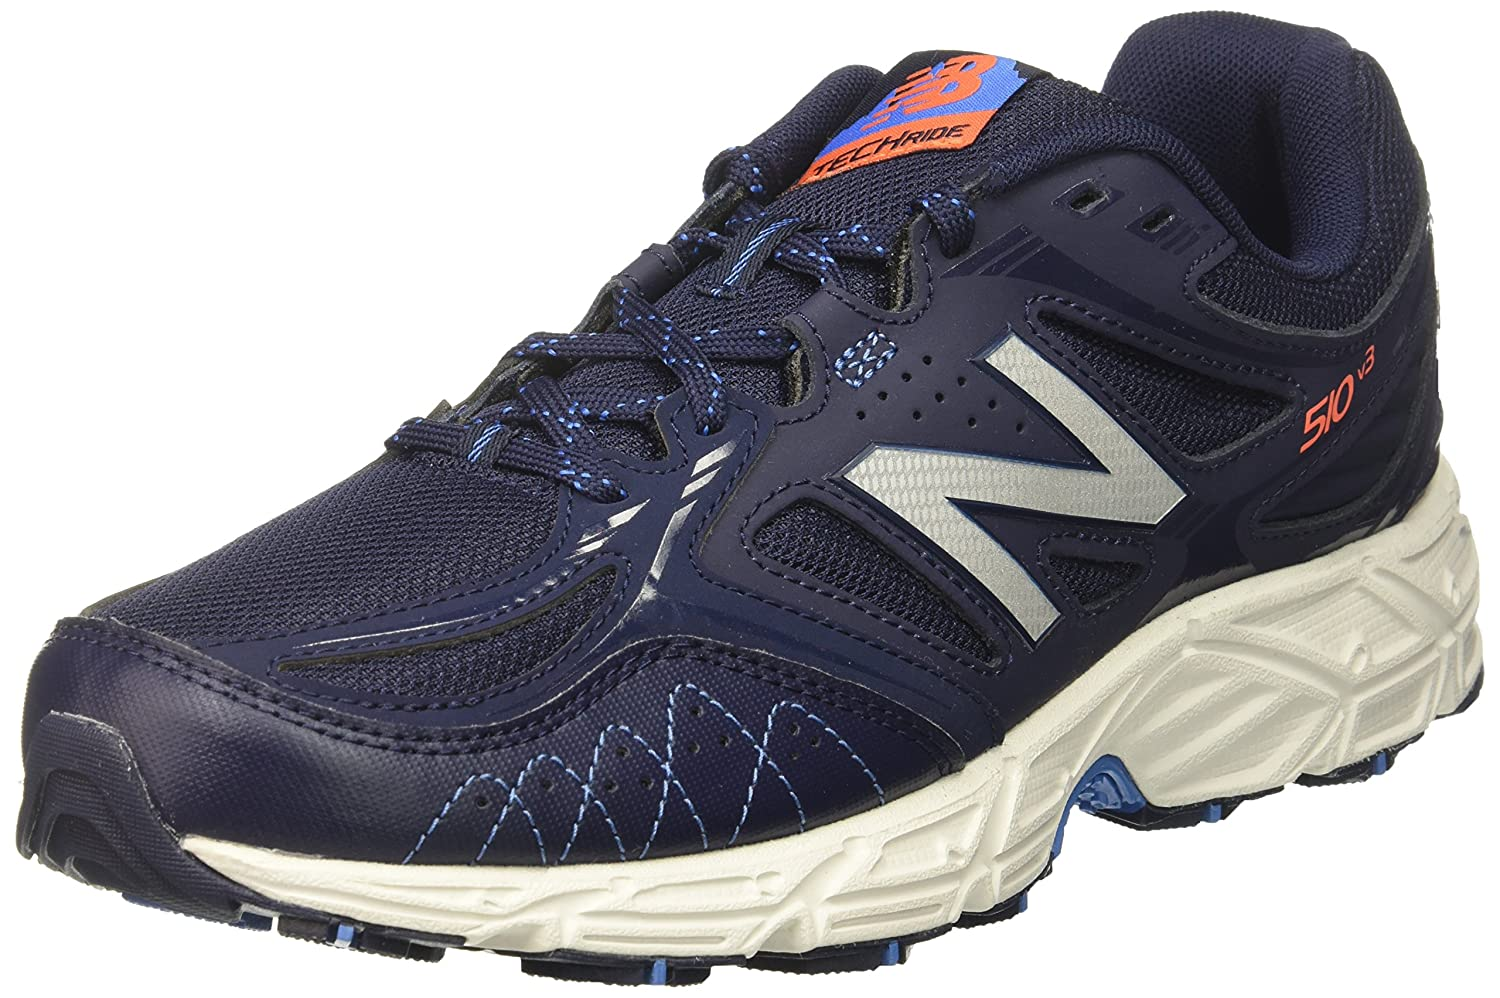 New Balance Women's WT510RS3 Trail Running Shoes B01CQVOPZQ 6 B(M) US|Nimbus Cloud